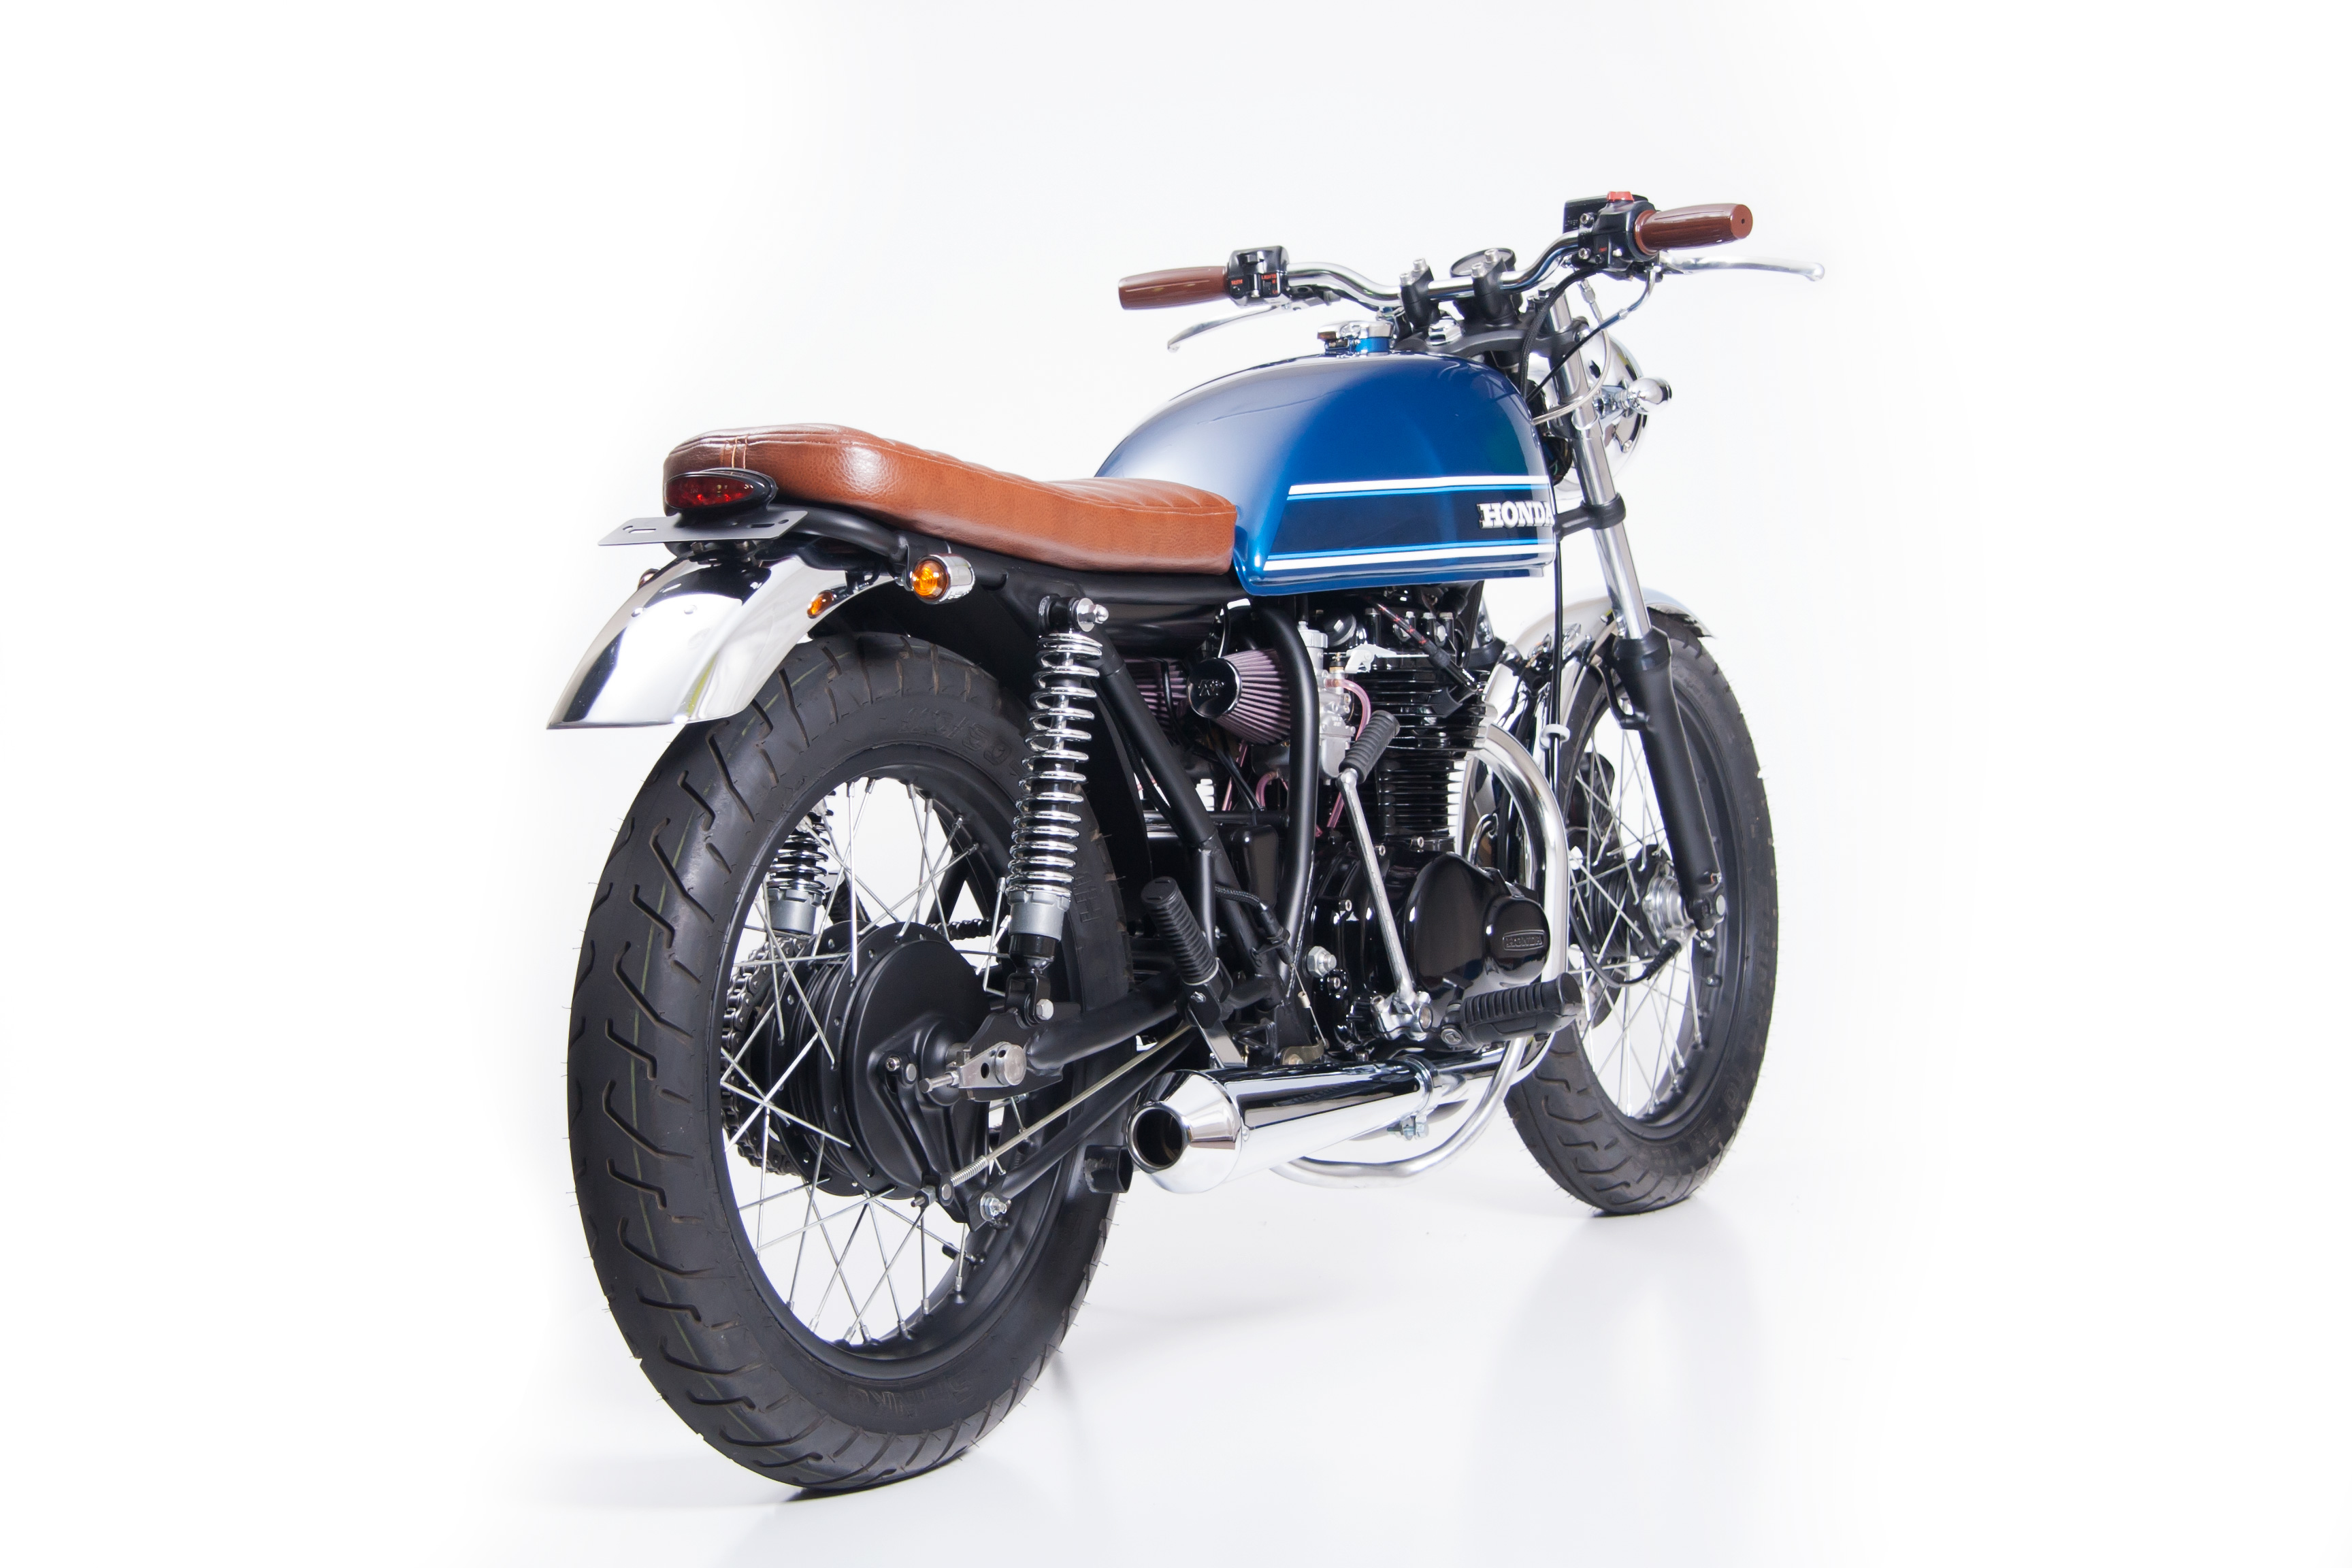 Custom exhaust, seat, fenders, controls and much more on this 1976 Honda CB360T